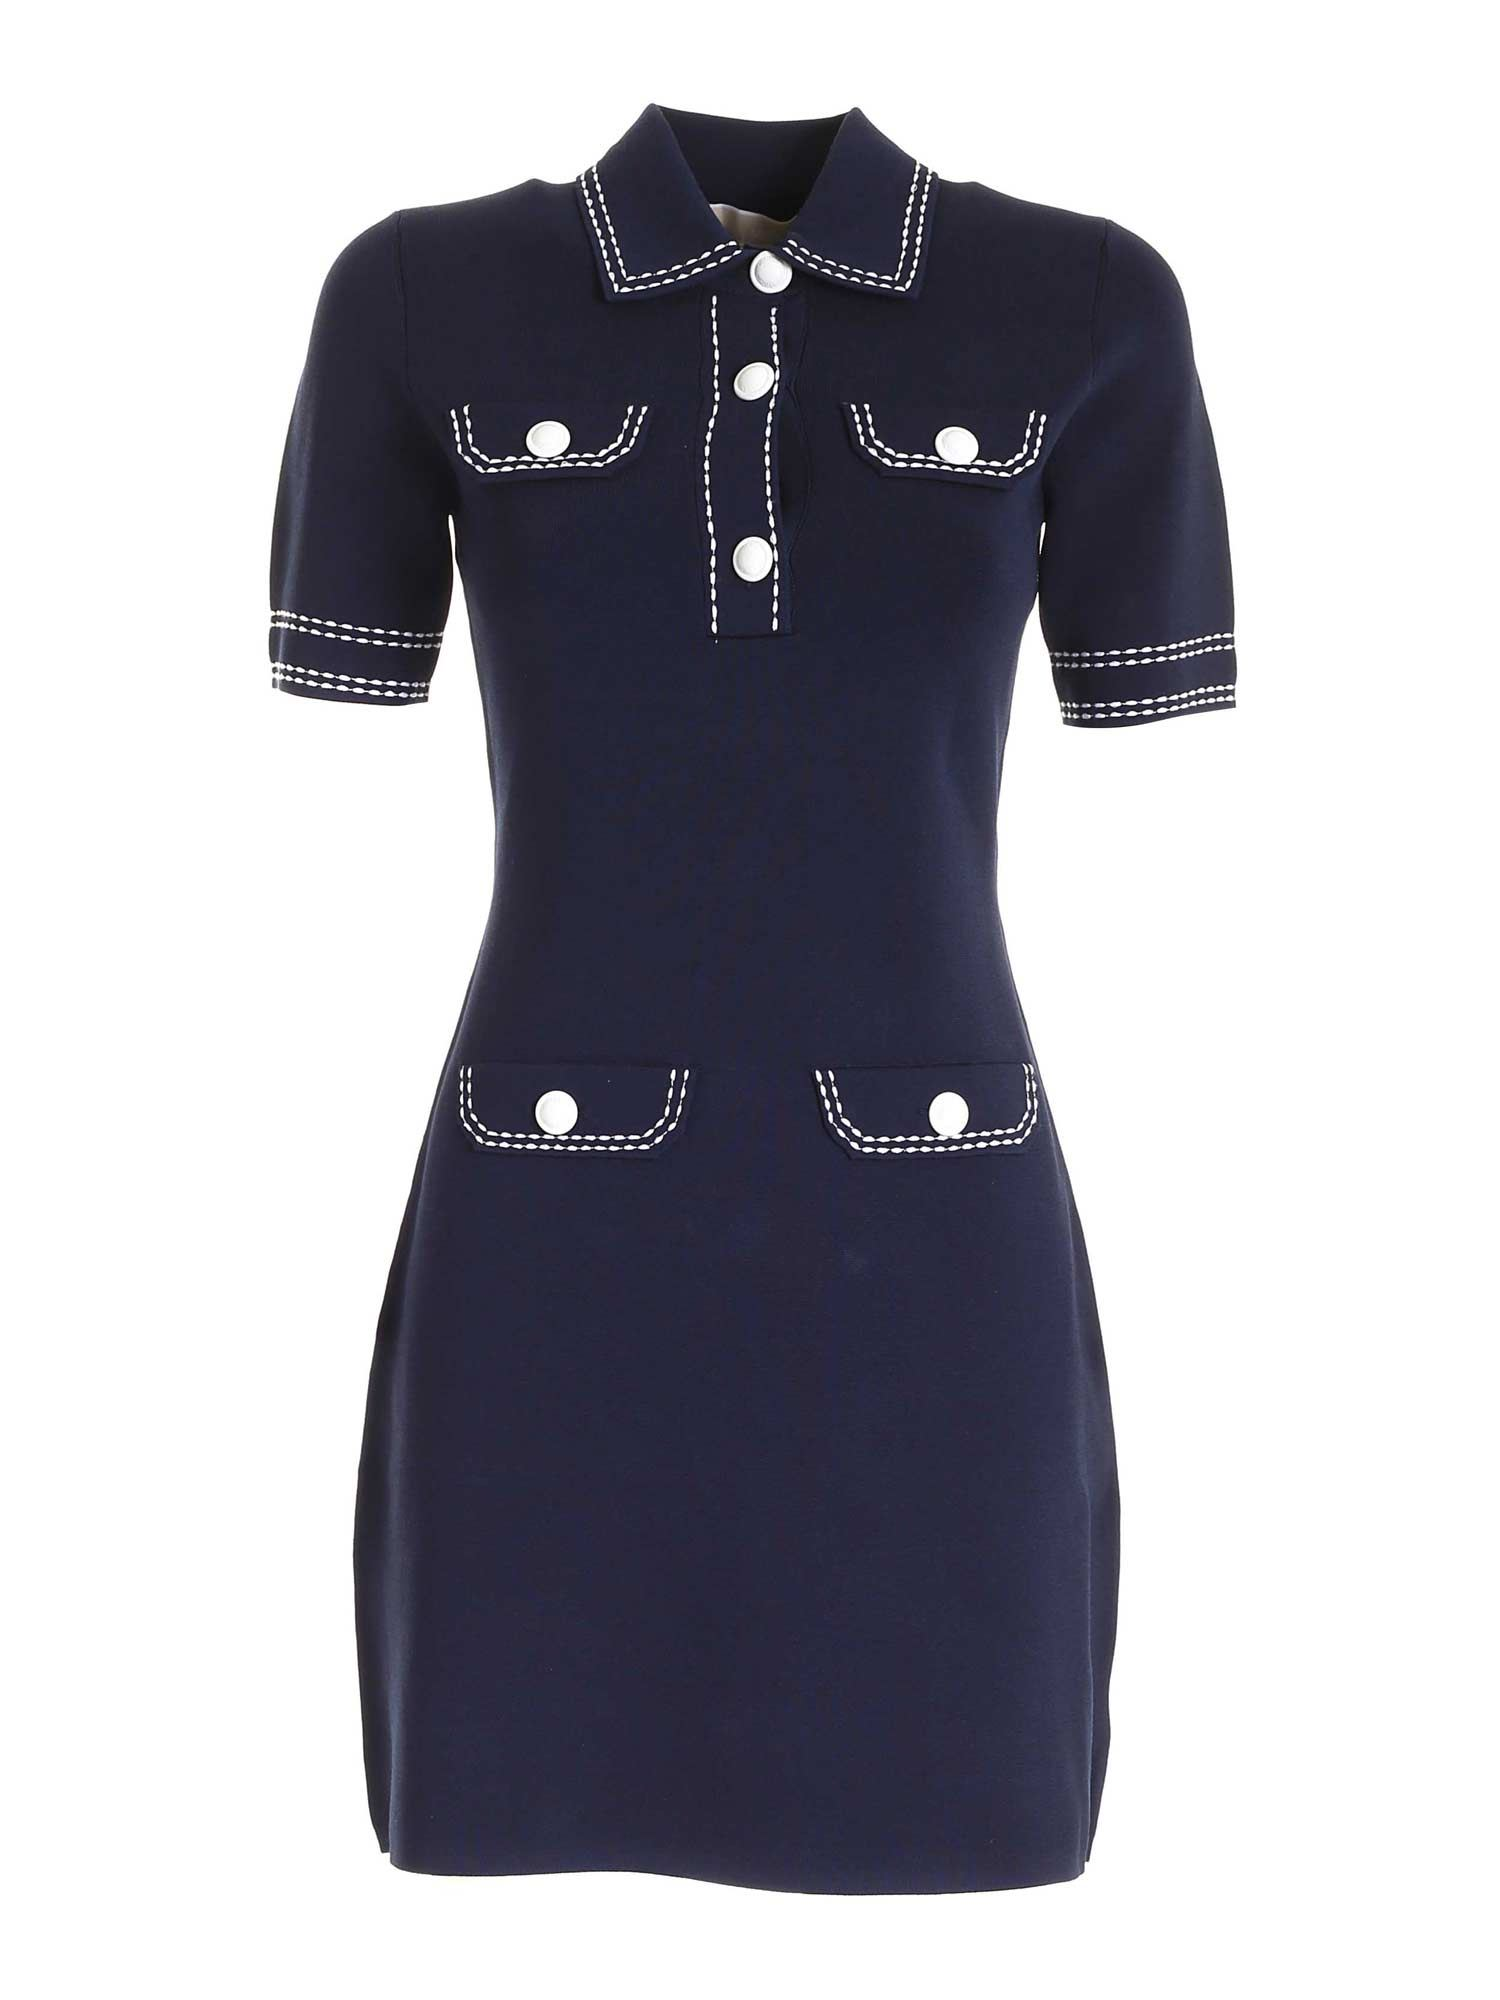 Michael Kors CONTRASTING STITCHING DRESS IN BLUE